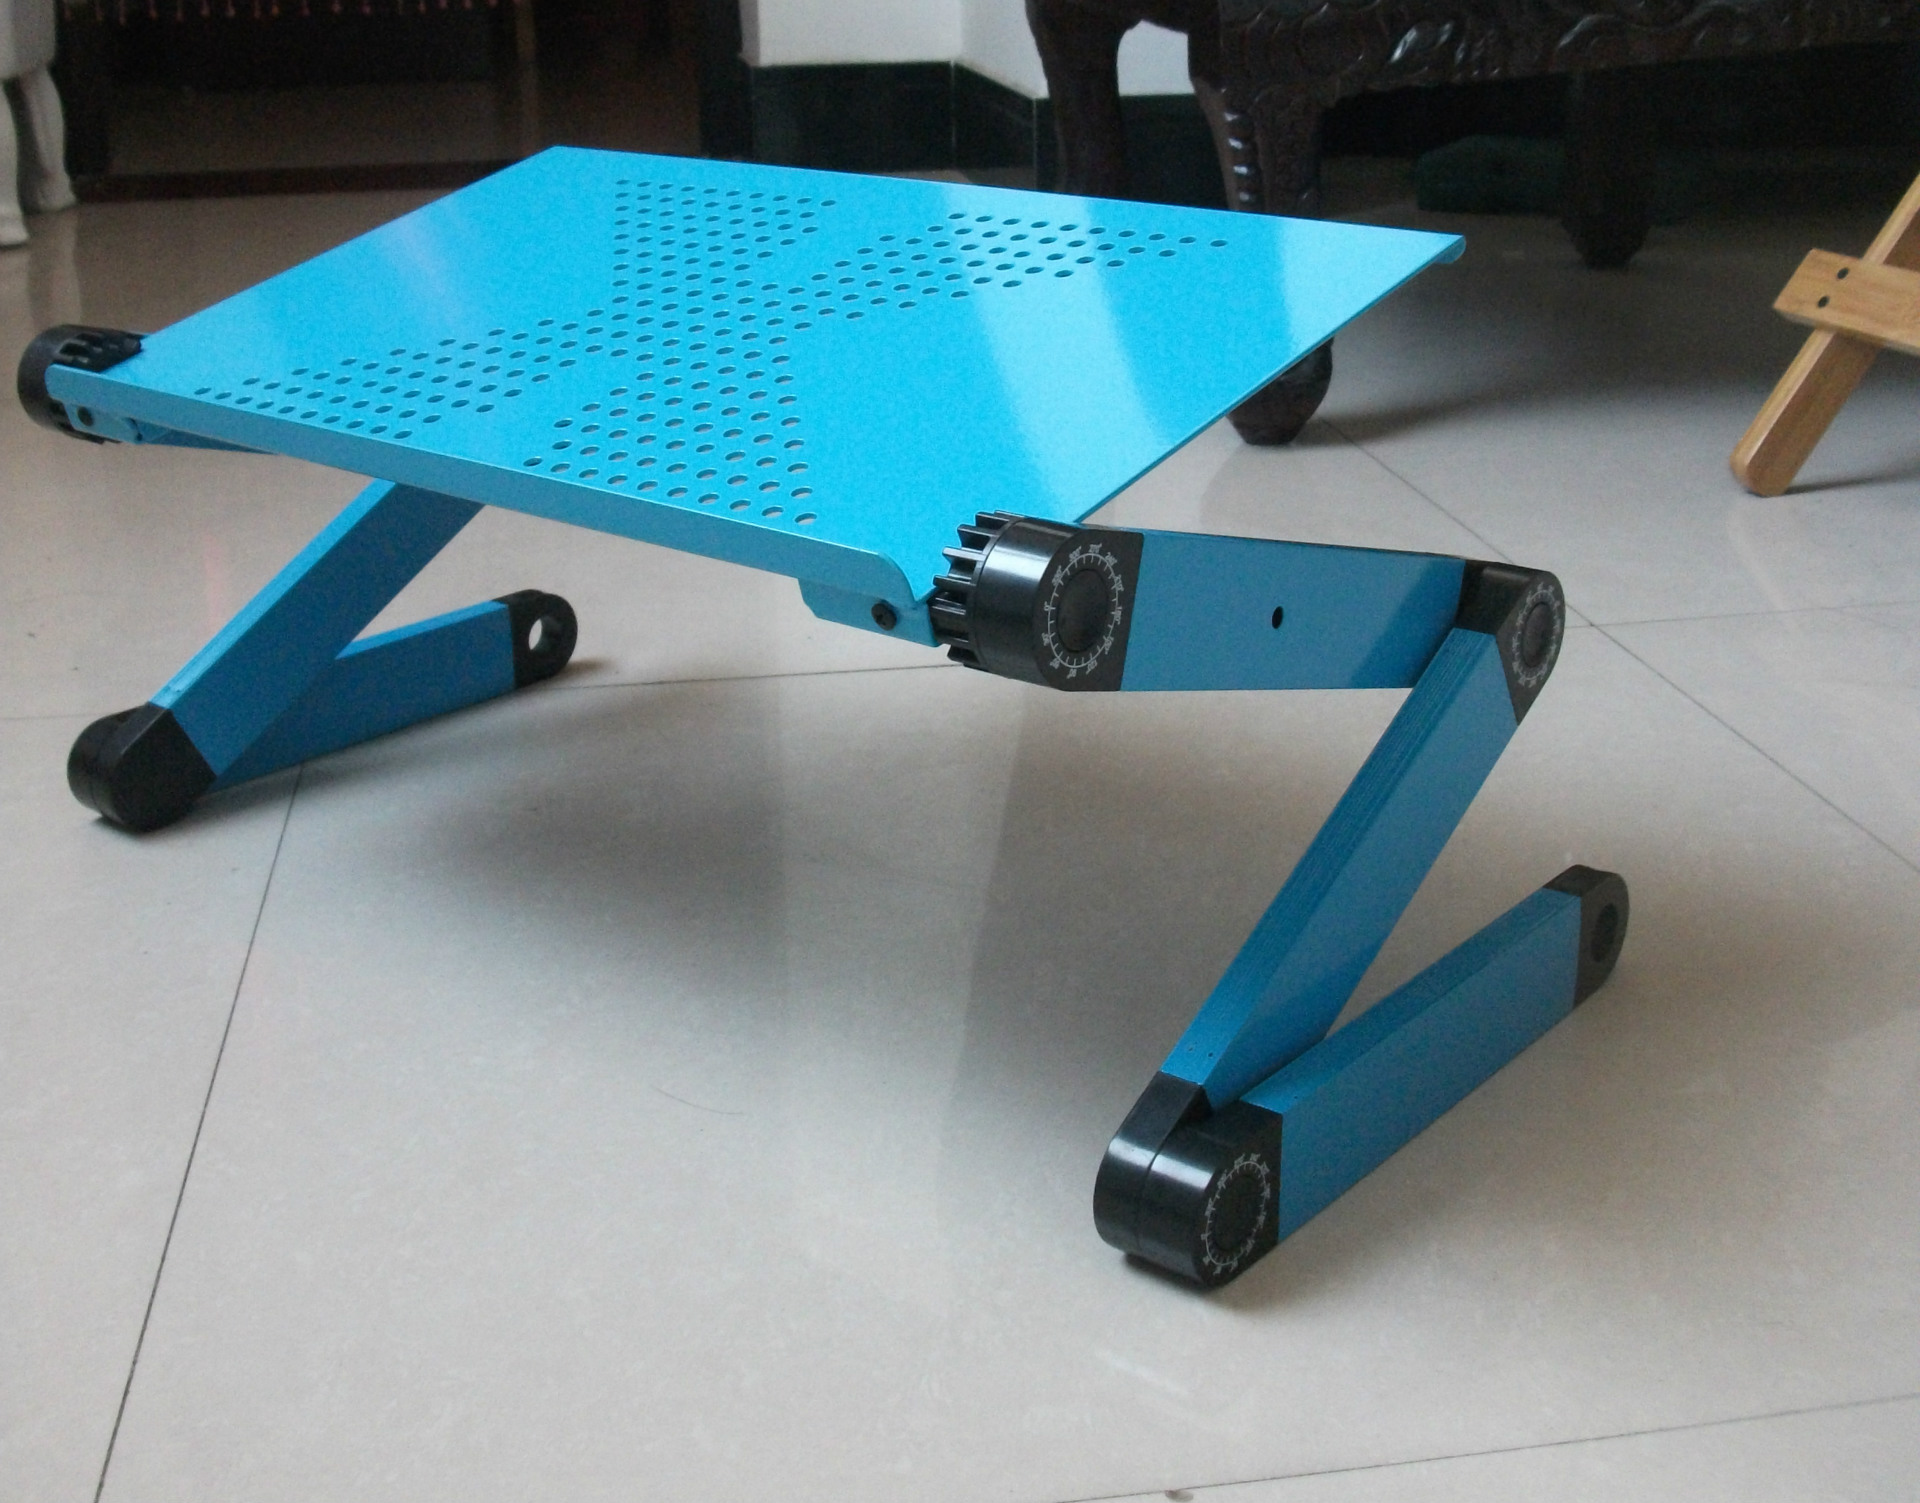 Computer Table Laptop Table Lazy Bed Desk Folding Simple Table Dormitory Useful Product Office Desk